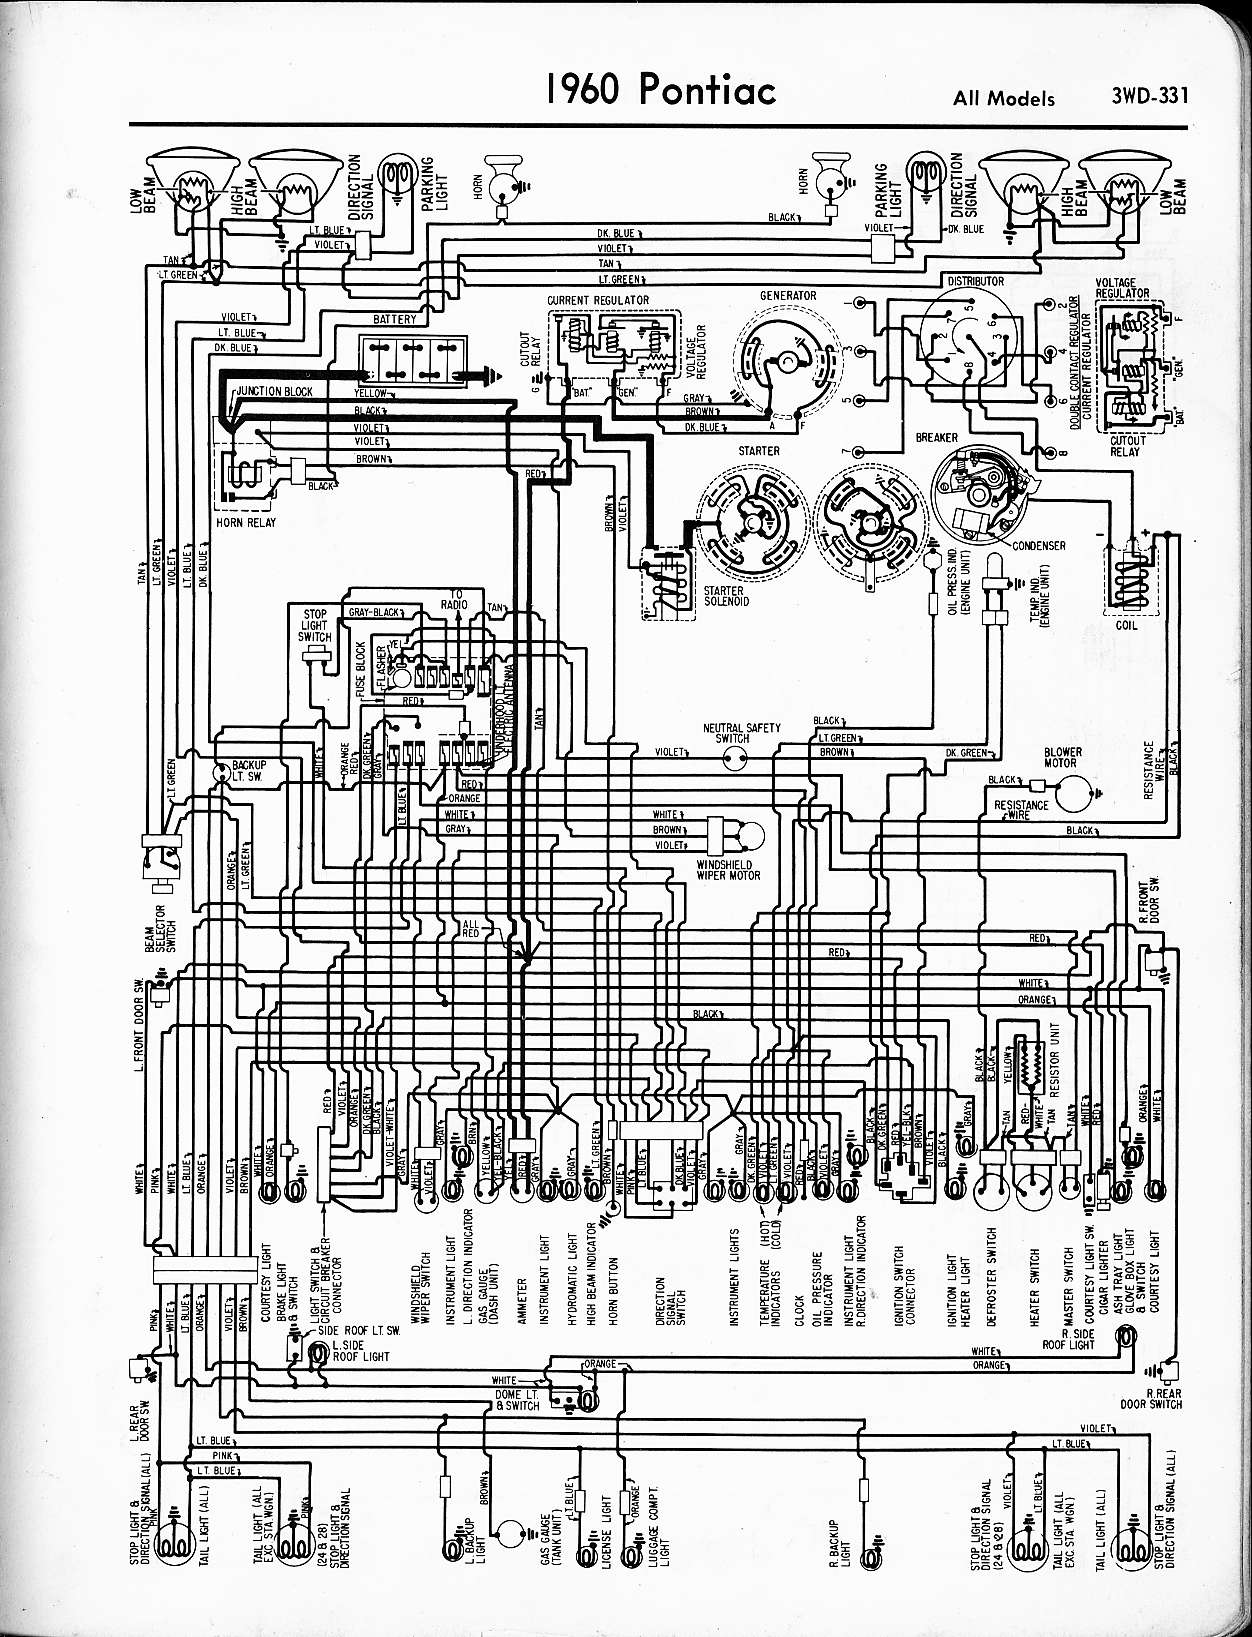 1966 pontiac wiring diagram detailed schematics diagram rh lelandlutheran  com 68 GTO Dash Wiring Diagram 1972